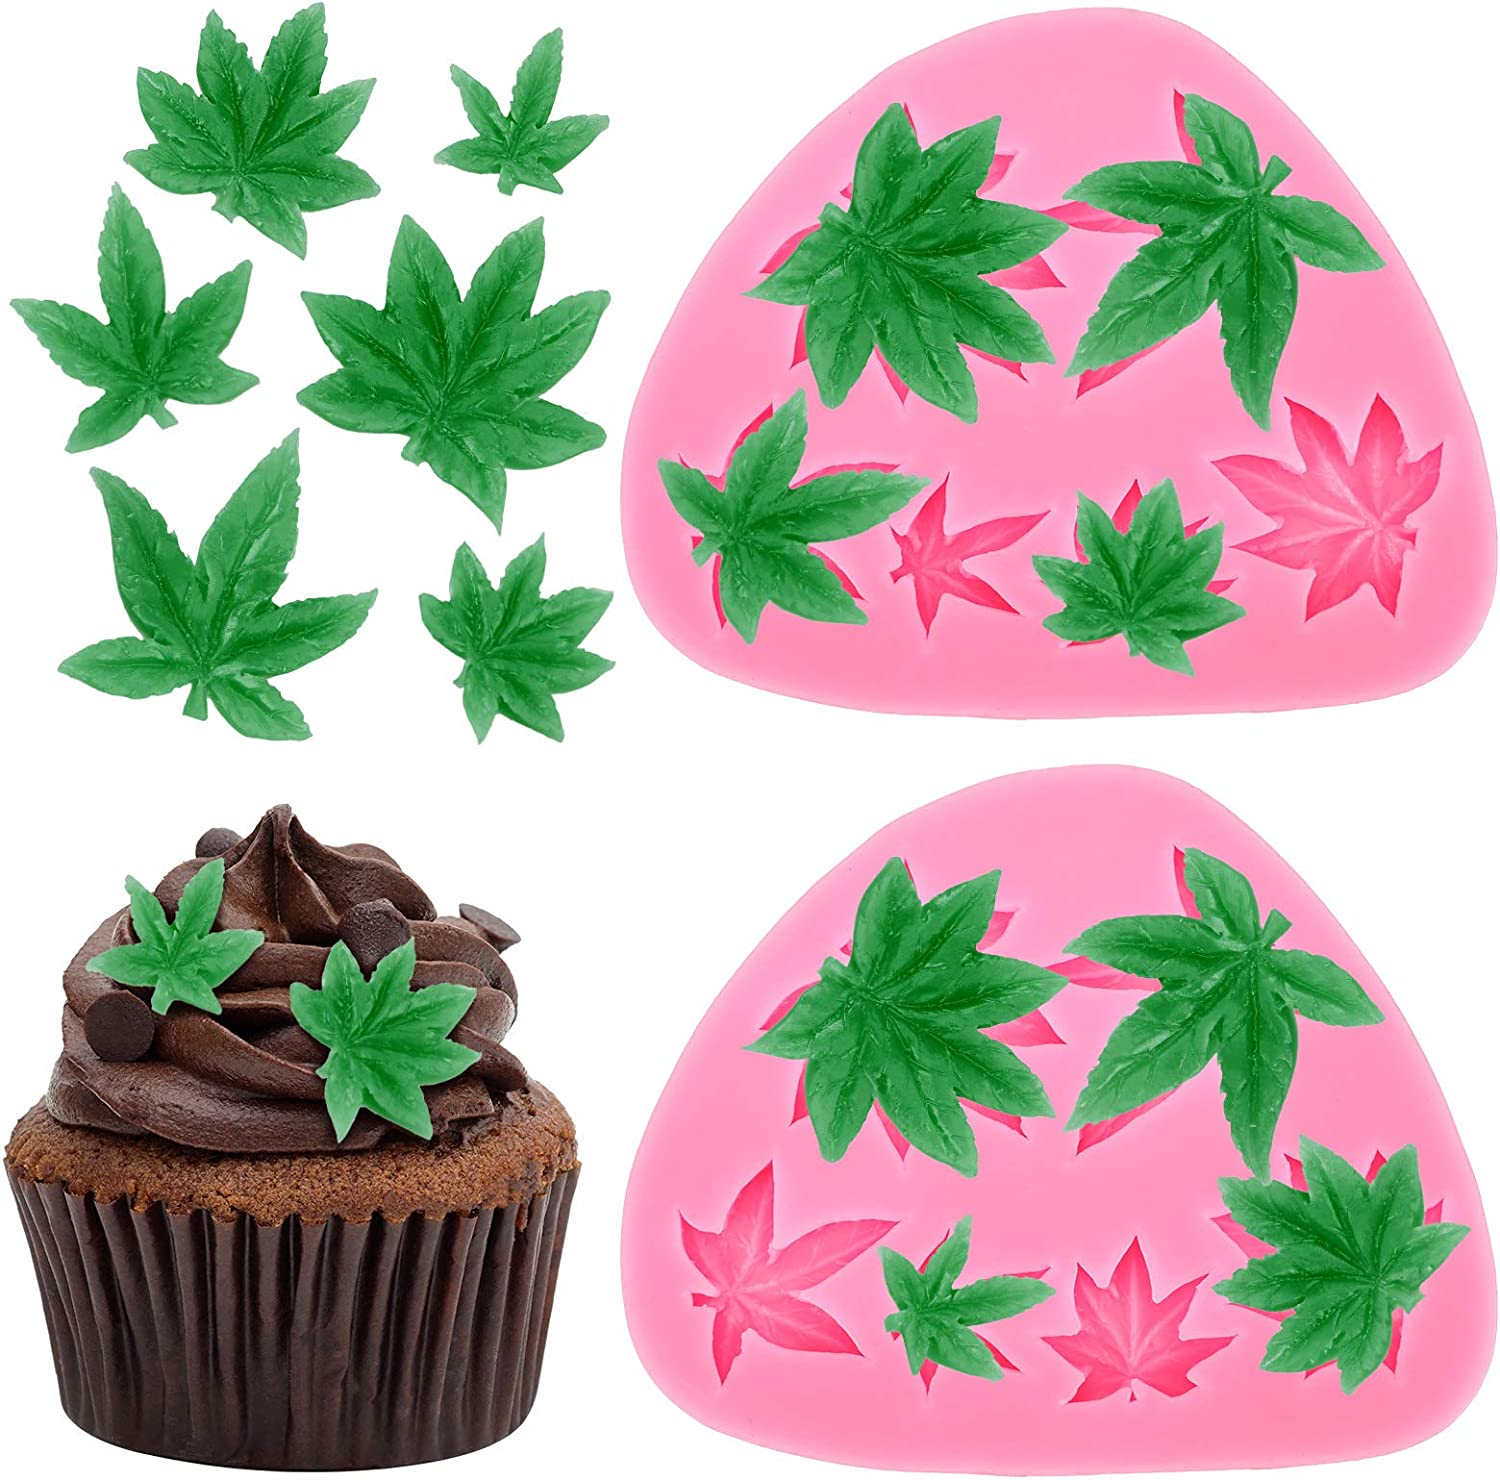 2 Pieces Weed Leaf Cake Fondant Mold Pot Leaves Silicone Mold for Weed Leaf Theme Cake Decoration, Chocolate Candy Polymer Clay Cookie Sugar Craft (Rose Red)